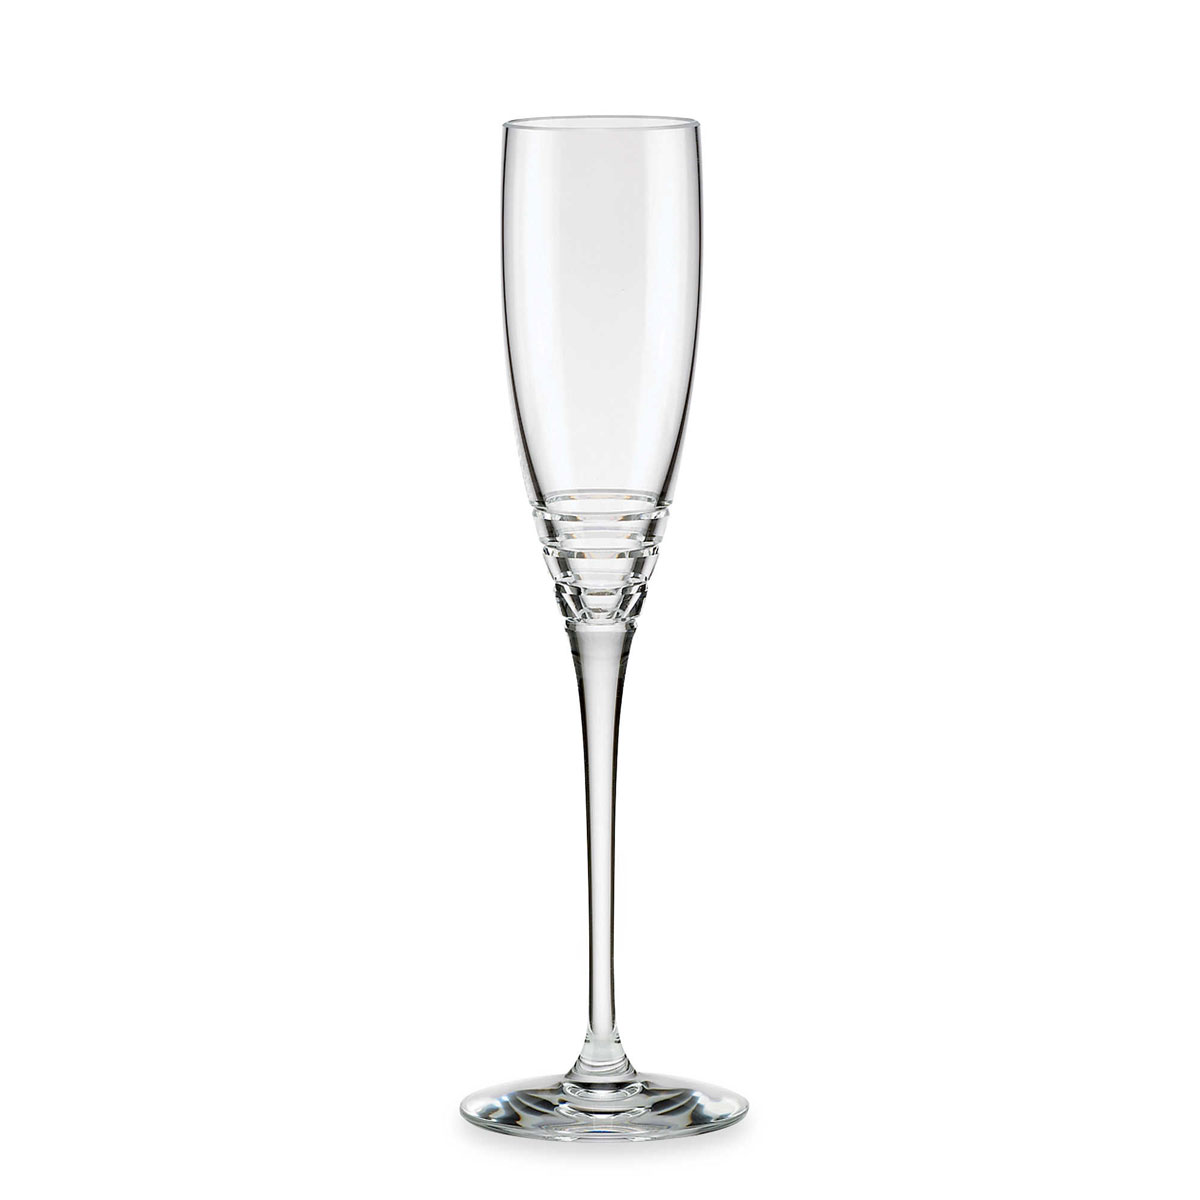 Kate Spade New York, Lenox Percival Place Crystal Flute, Single